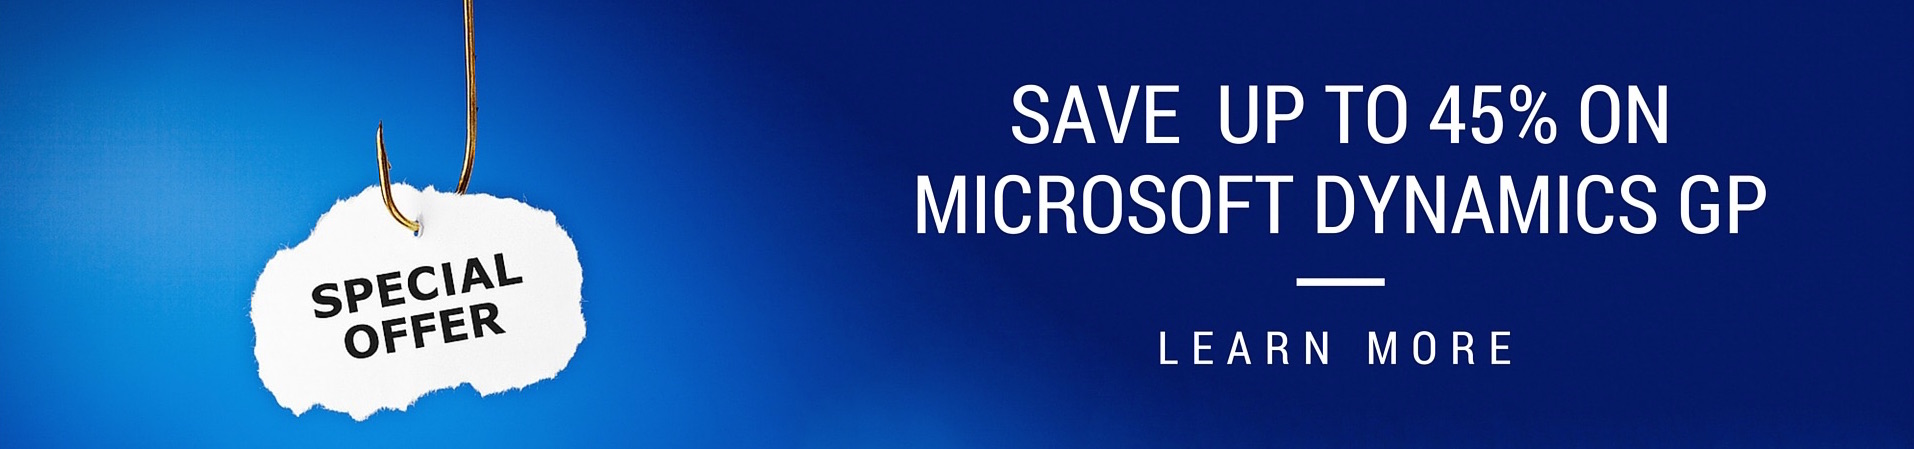 Special offer promotion for Microsoft Dynamics GP from Conexus SG Dallas ERP consultants